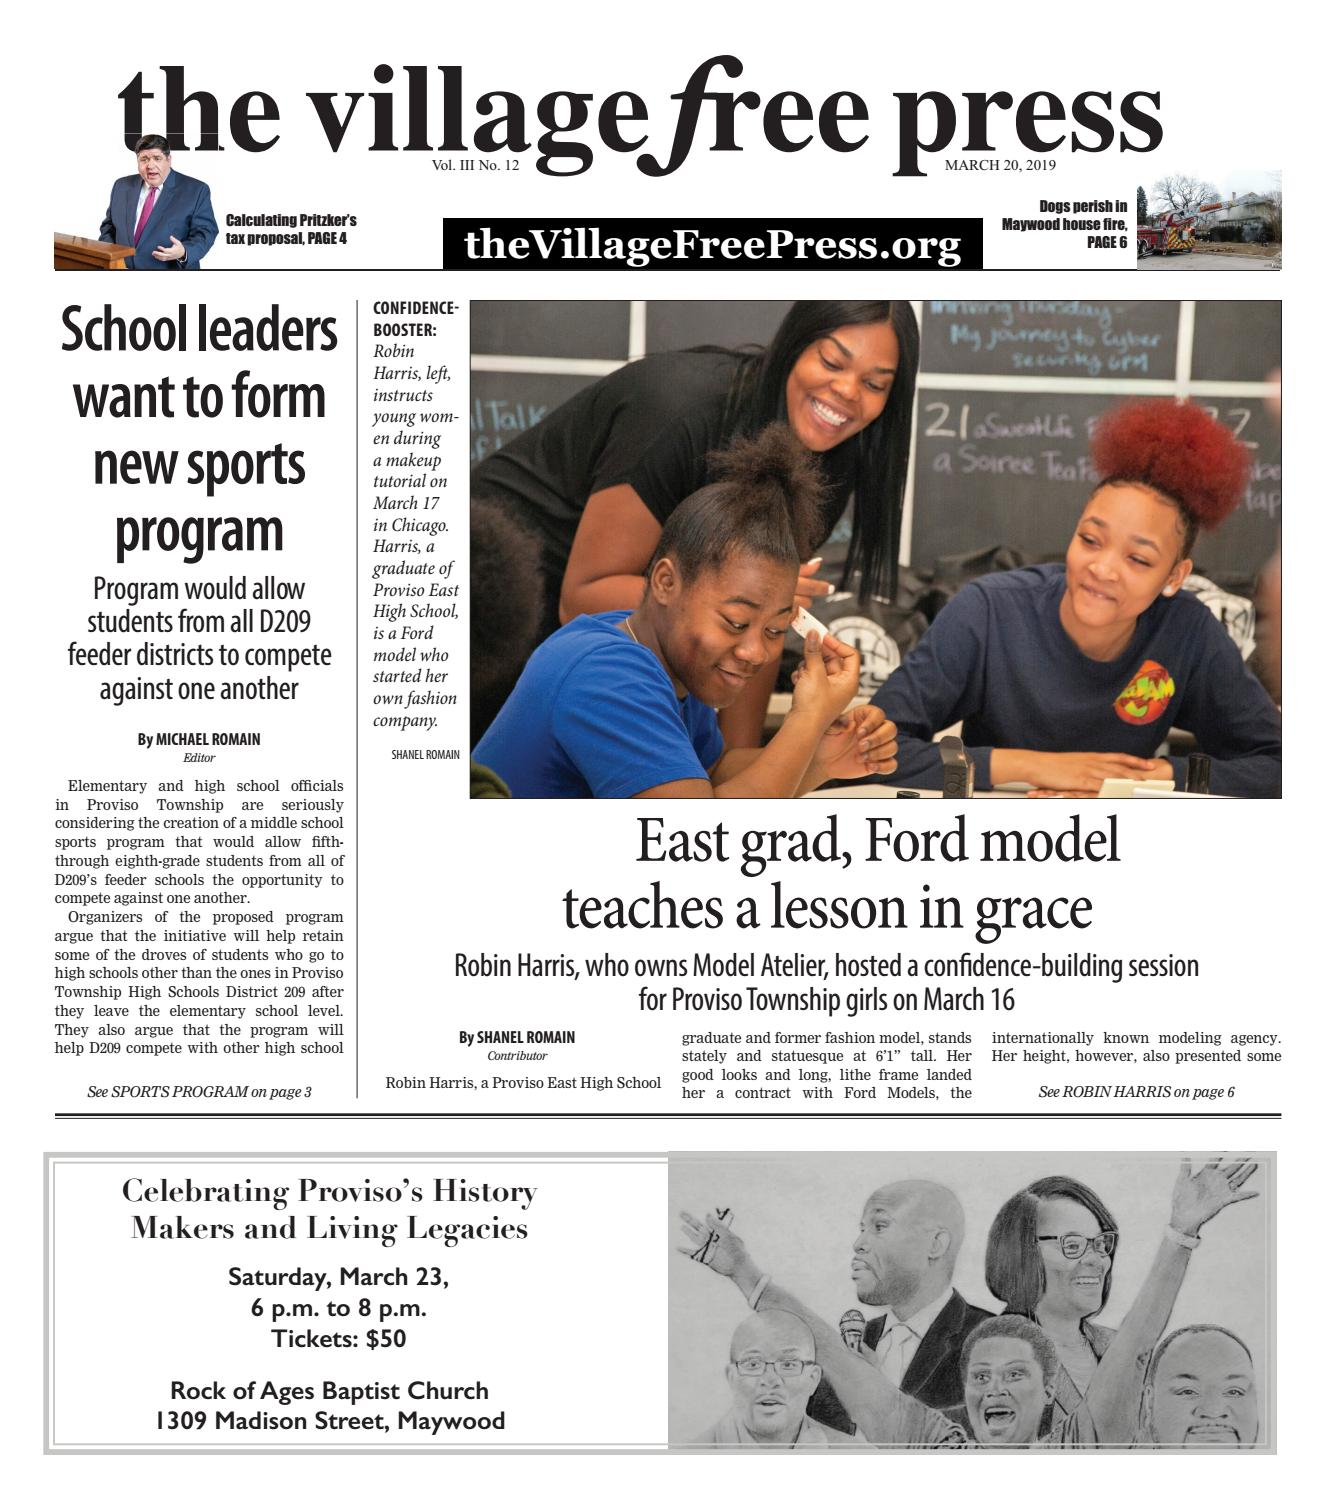 Village Free Press_032019 by The Village Free Press - issuu